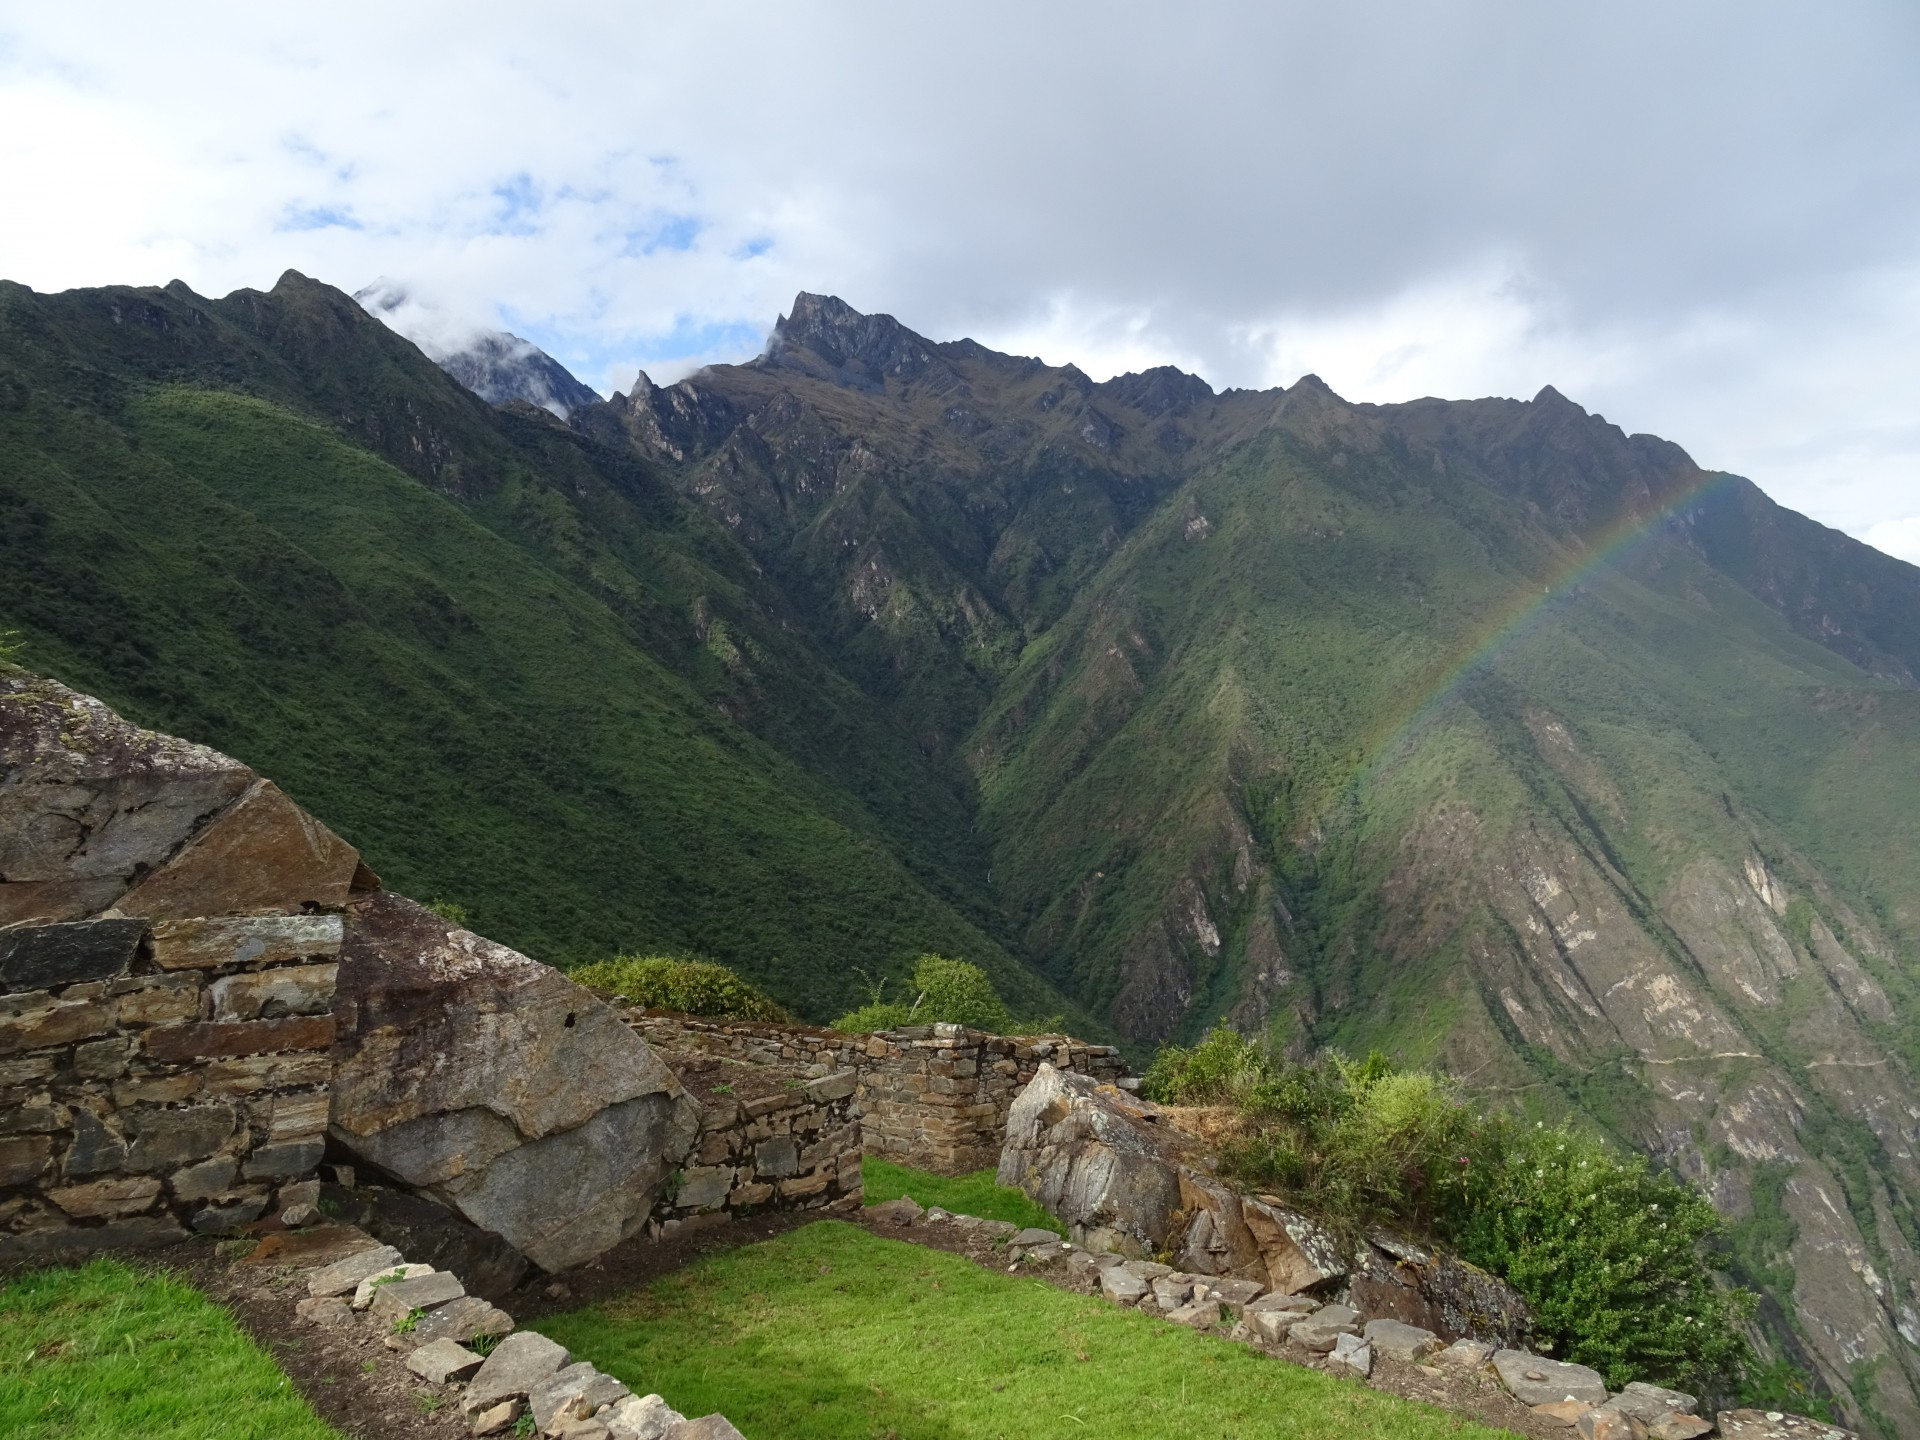 The Incas worshipped the mountains as providers of life - water. From here, they had a waterway all the way over the mountain you see in the background.